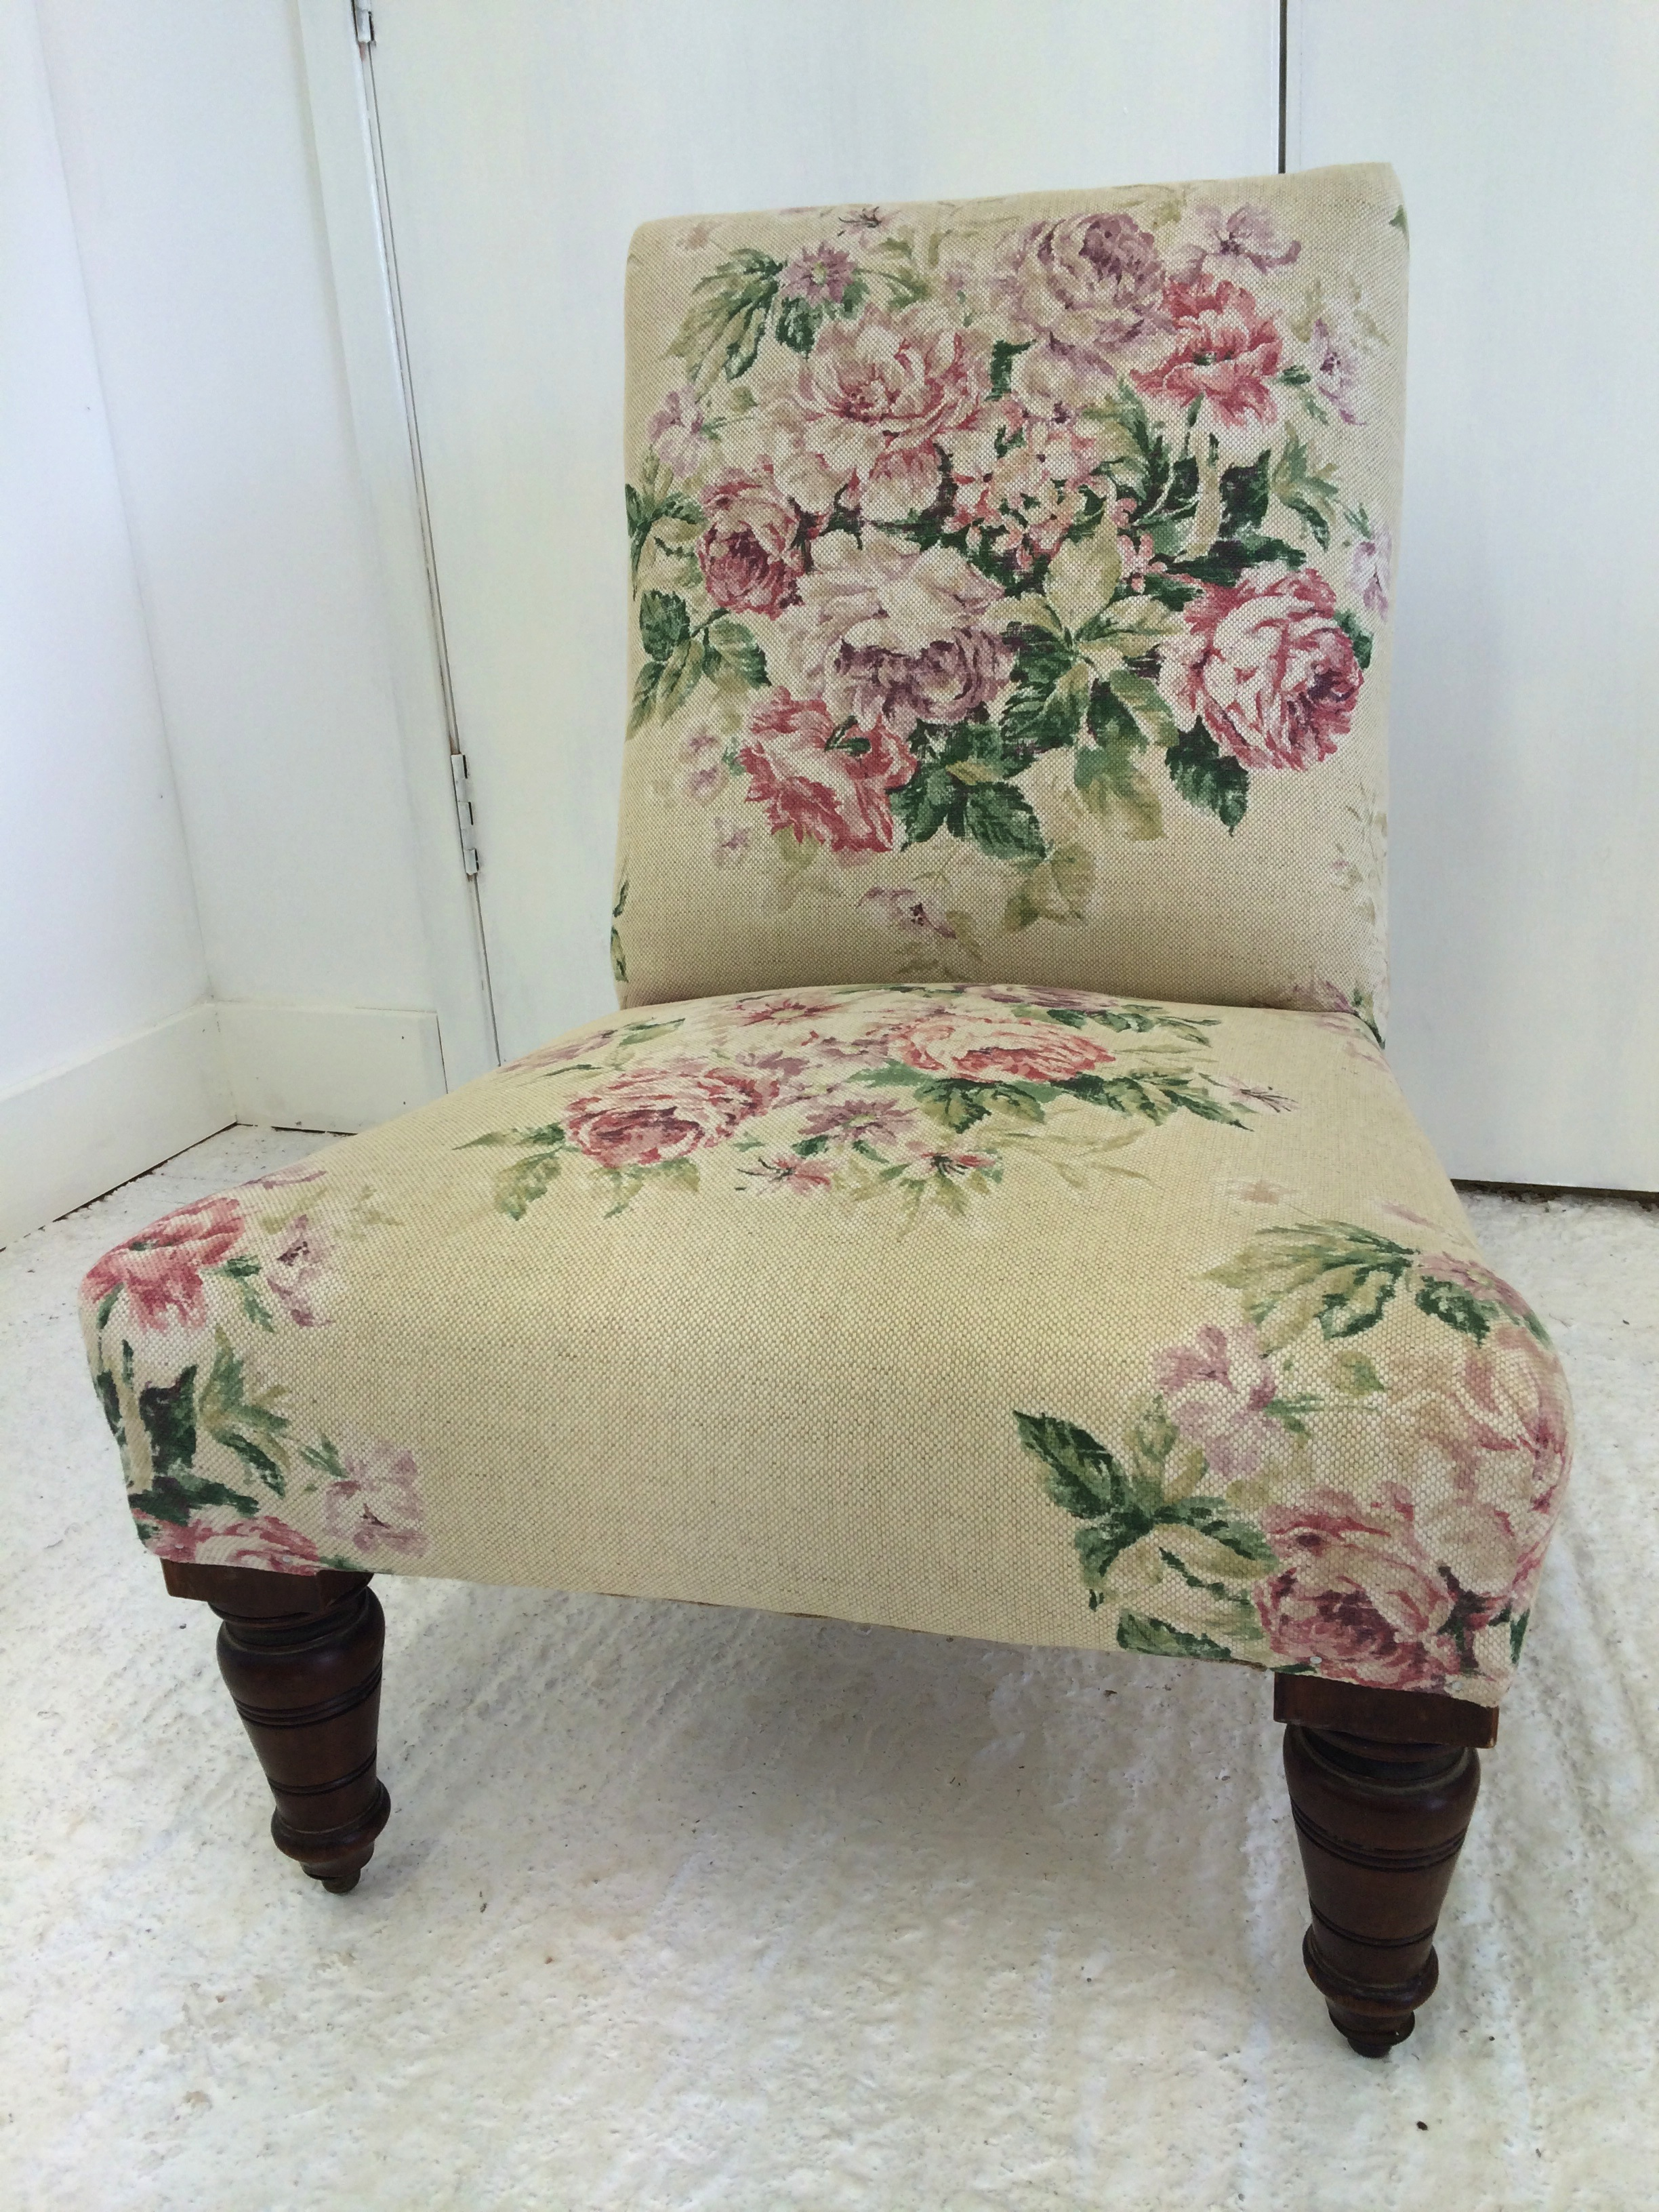 This little chair has been recovered in Weybridge by Sanderson, it is a classic print and the chair looks fantastic.